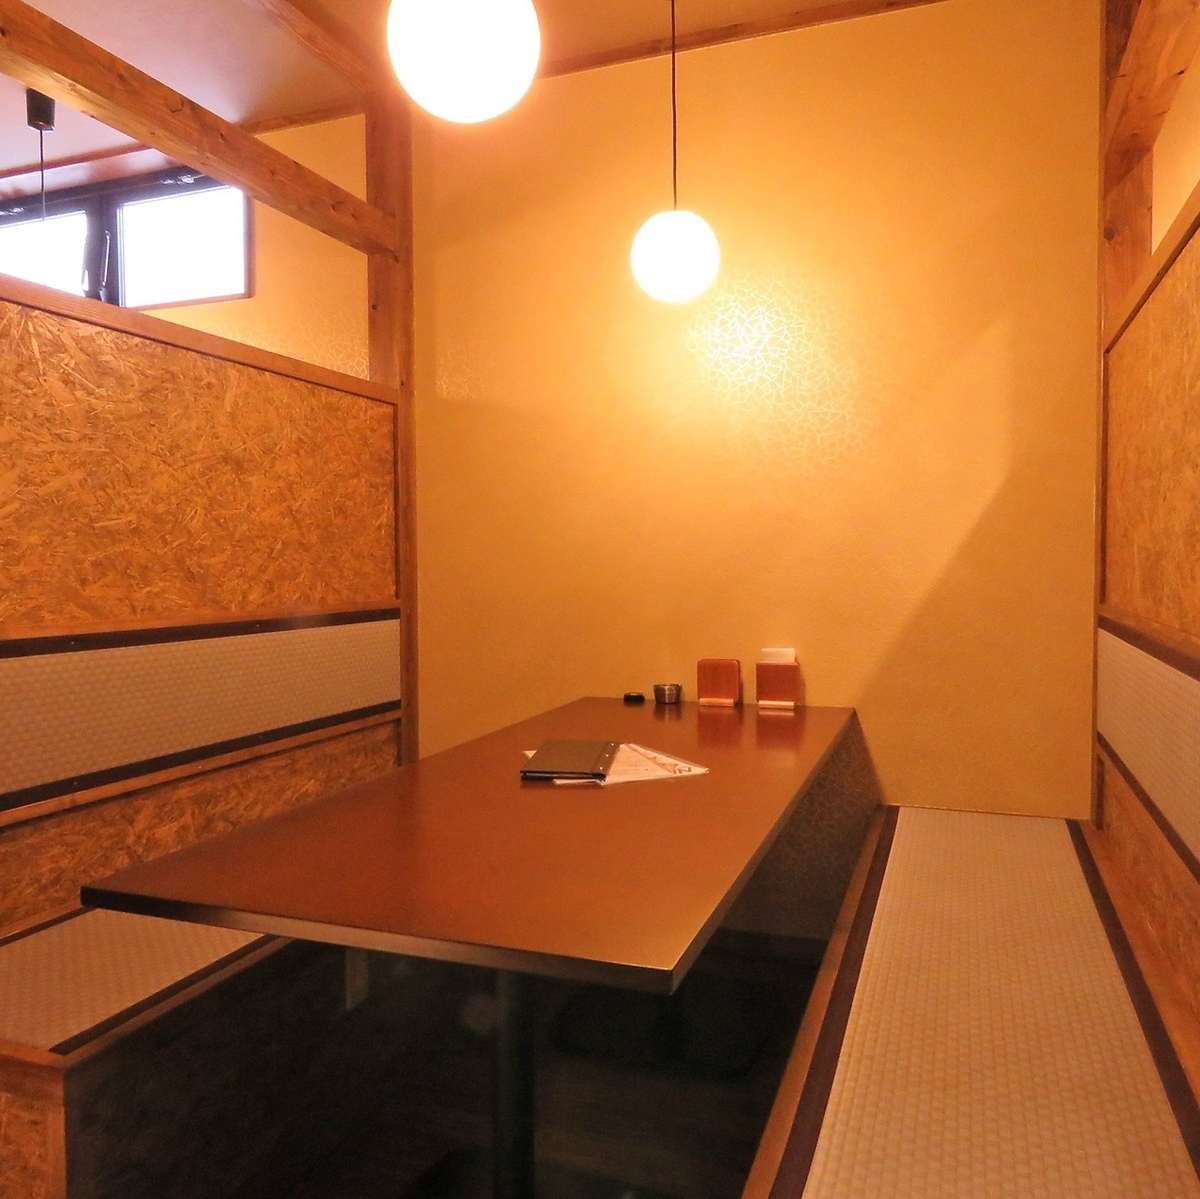 [2F] You can use up to 6 people.It is a semi-private room that entrances are divided by goodwill, and you can enjoy it without worrying about other lines of sight.It is perfect for gatherings with friends or gongs.It is made up of Japanese taste lighting and tatami benchesheet, the atmosphere is good and finished in a relaxing space production even while it is fancy.It is popular and please reserve as soon as possible.